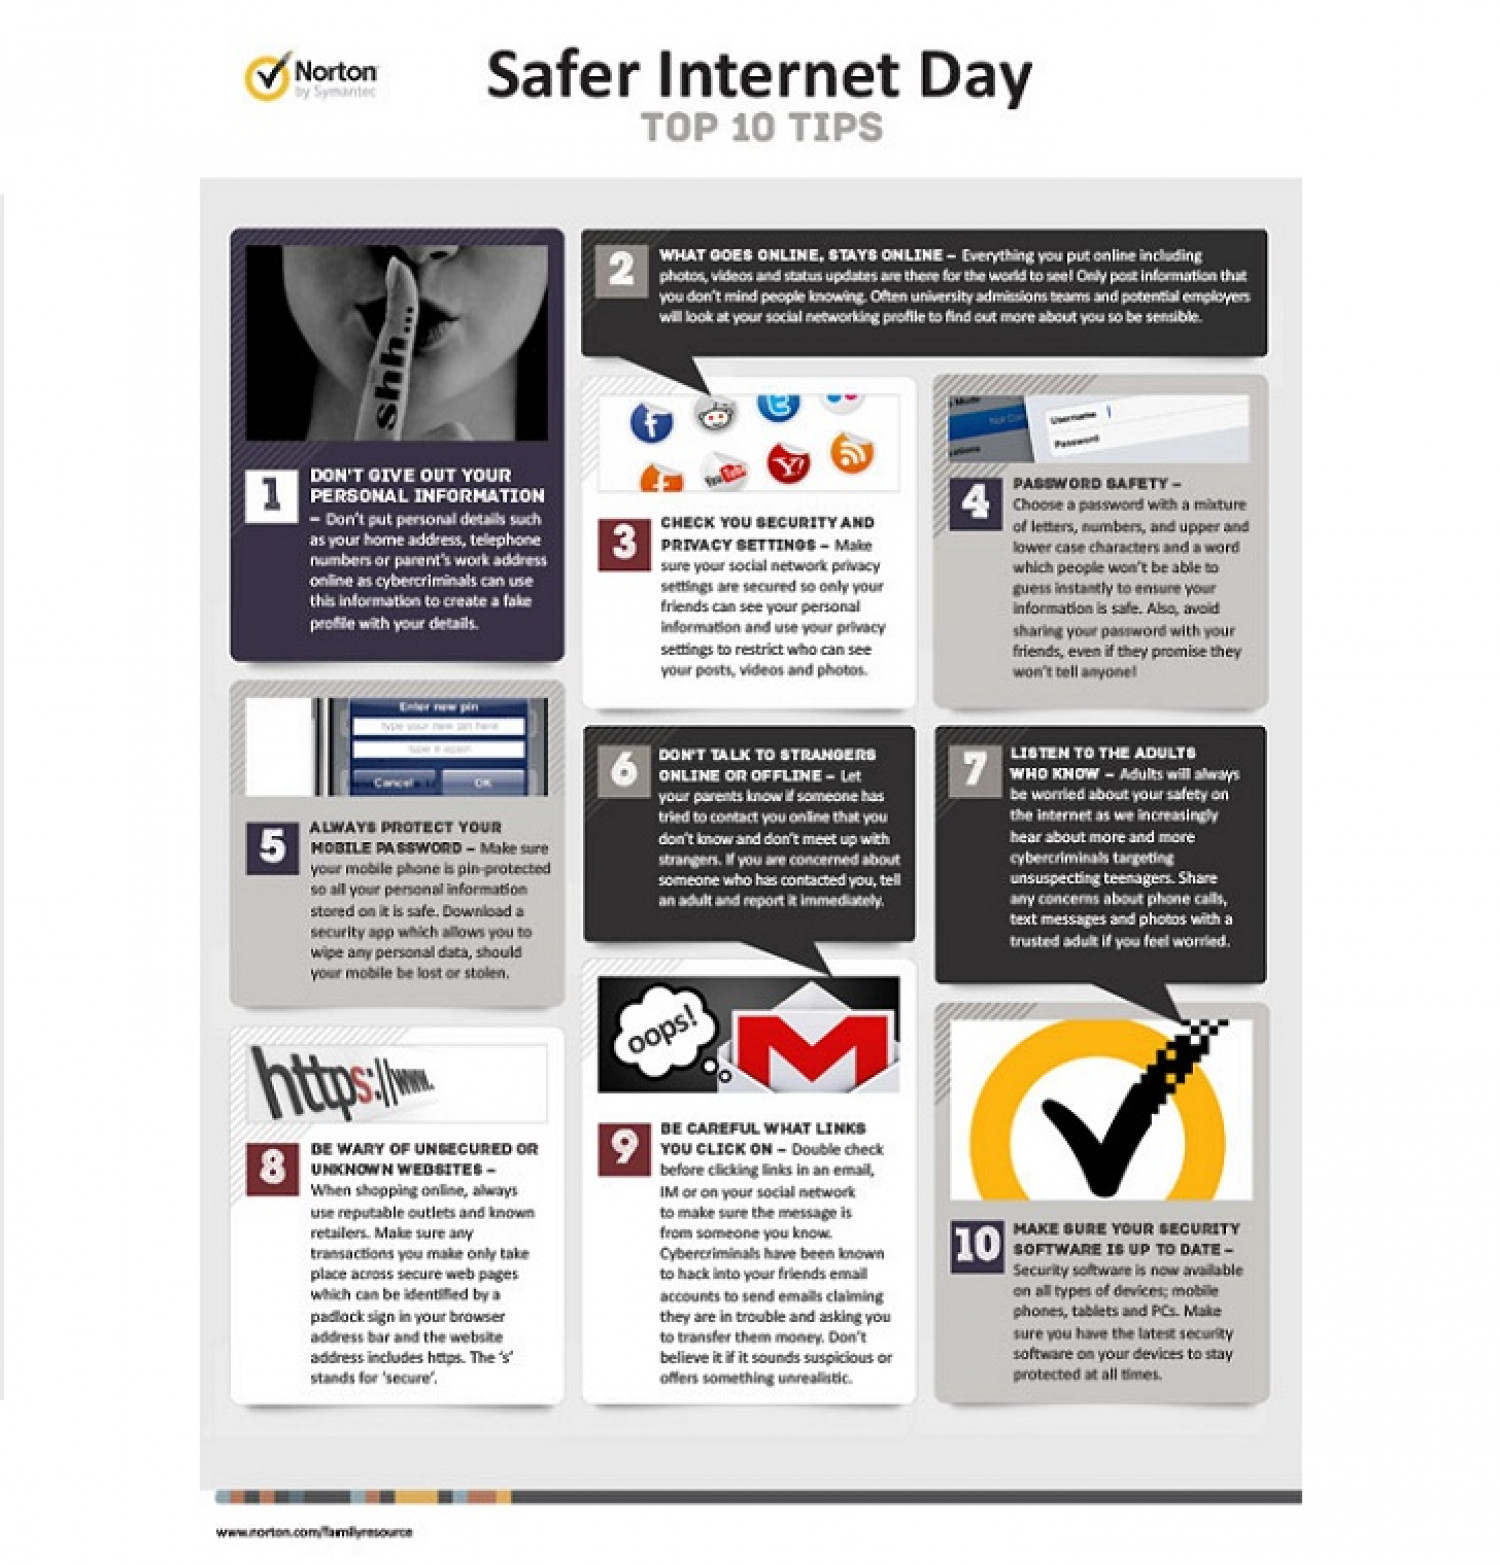 Safer Internet Day - Norton's Top 10 Tips Infographic